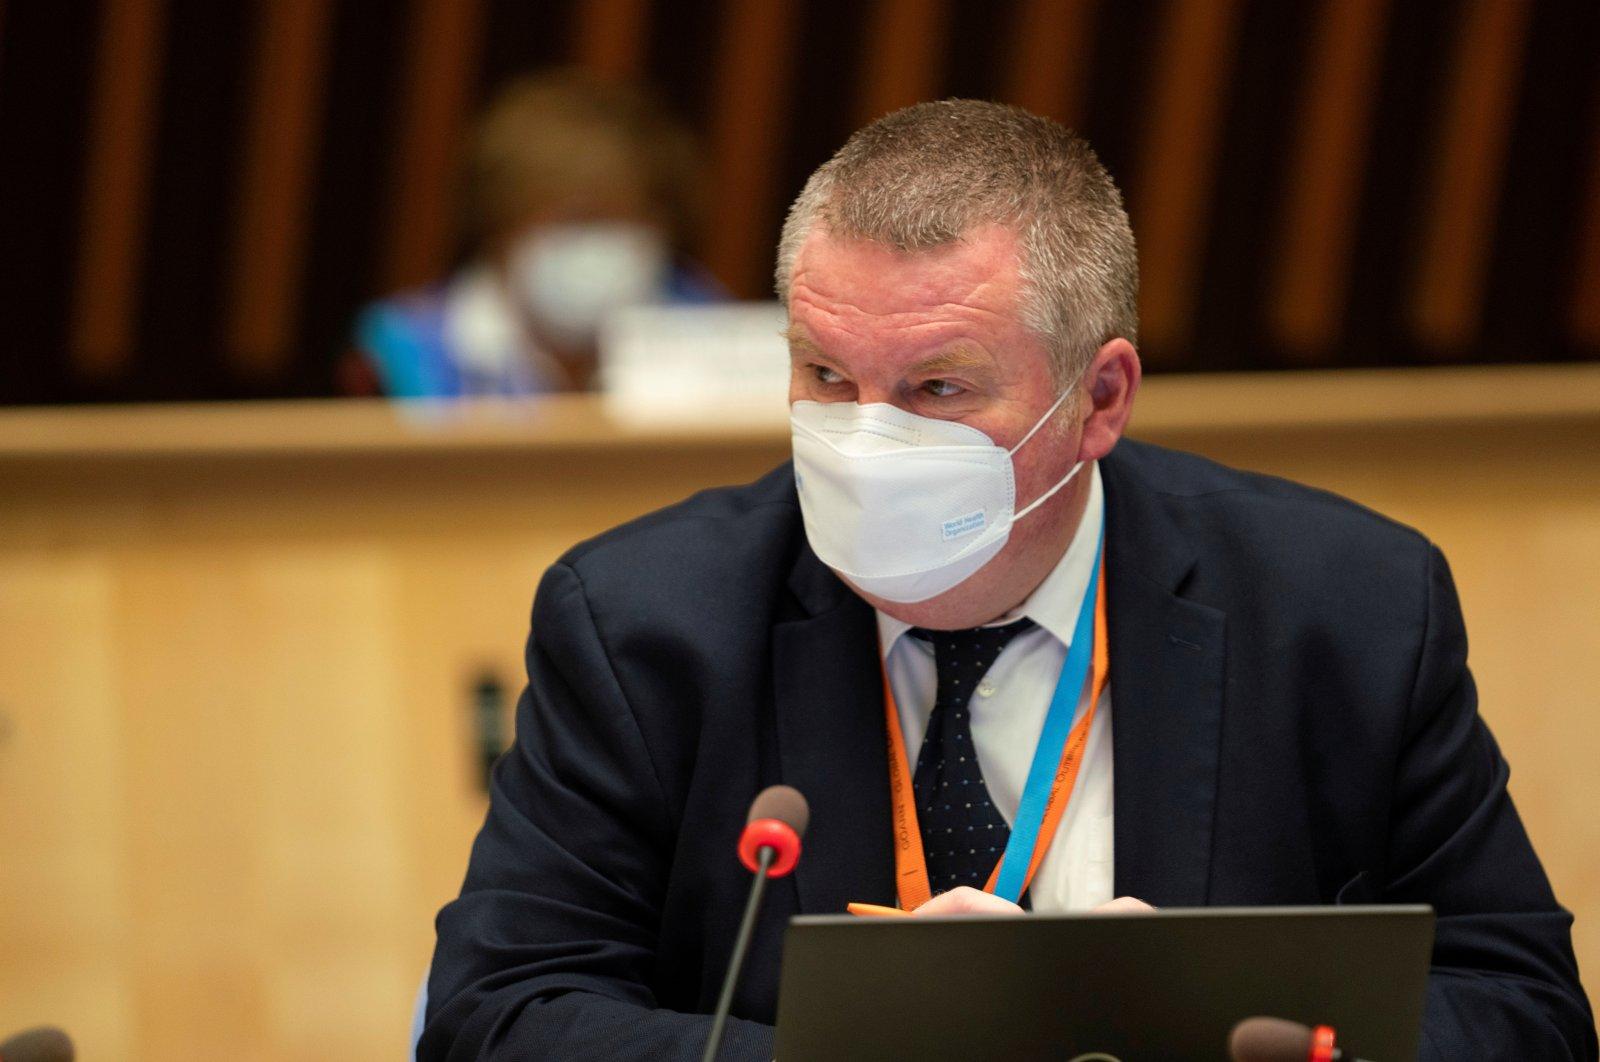 WHO Health Emergencies Programme Director Michael Ryan during a session on the COVID-19 response in Geneva, Switzerland, Oct. 5, 2020.  (WHO/Handout via Reuters)